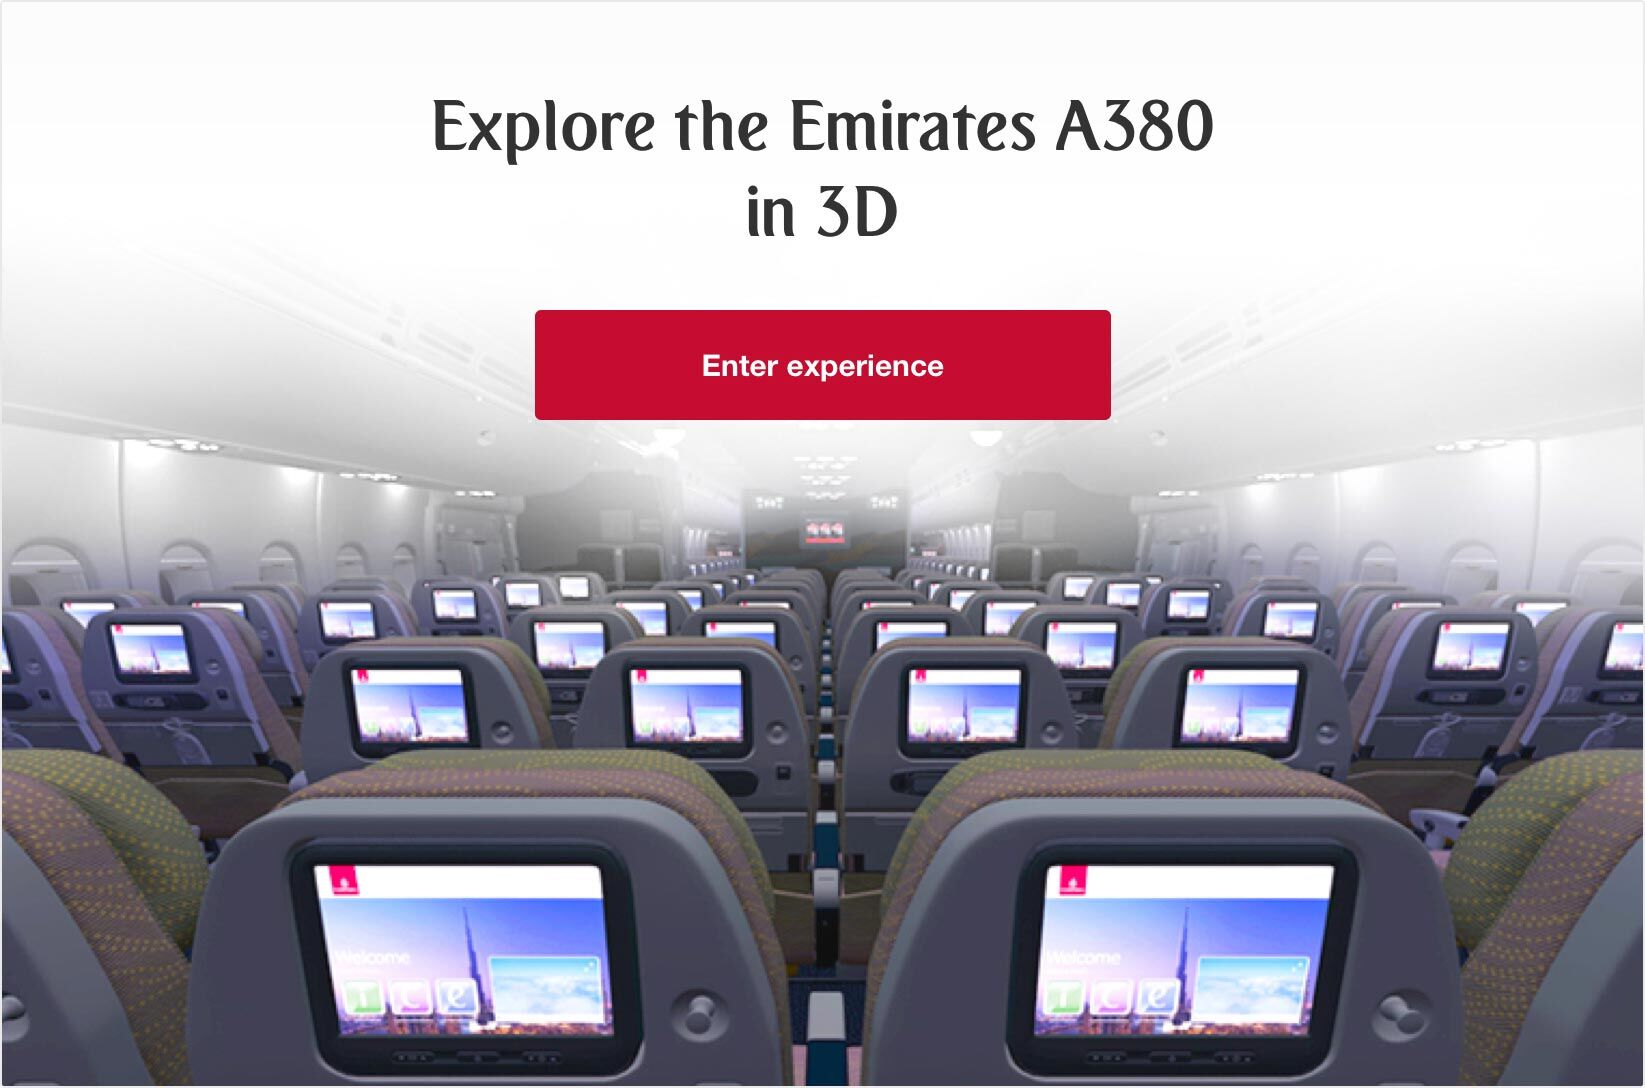 Emirates A380 | Our fleet | The Emirates Experience | Emirates ...